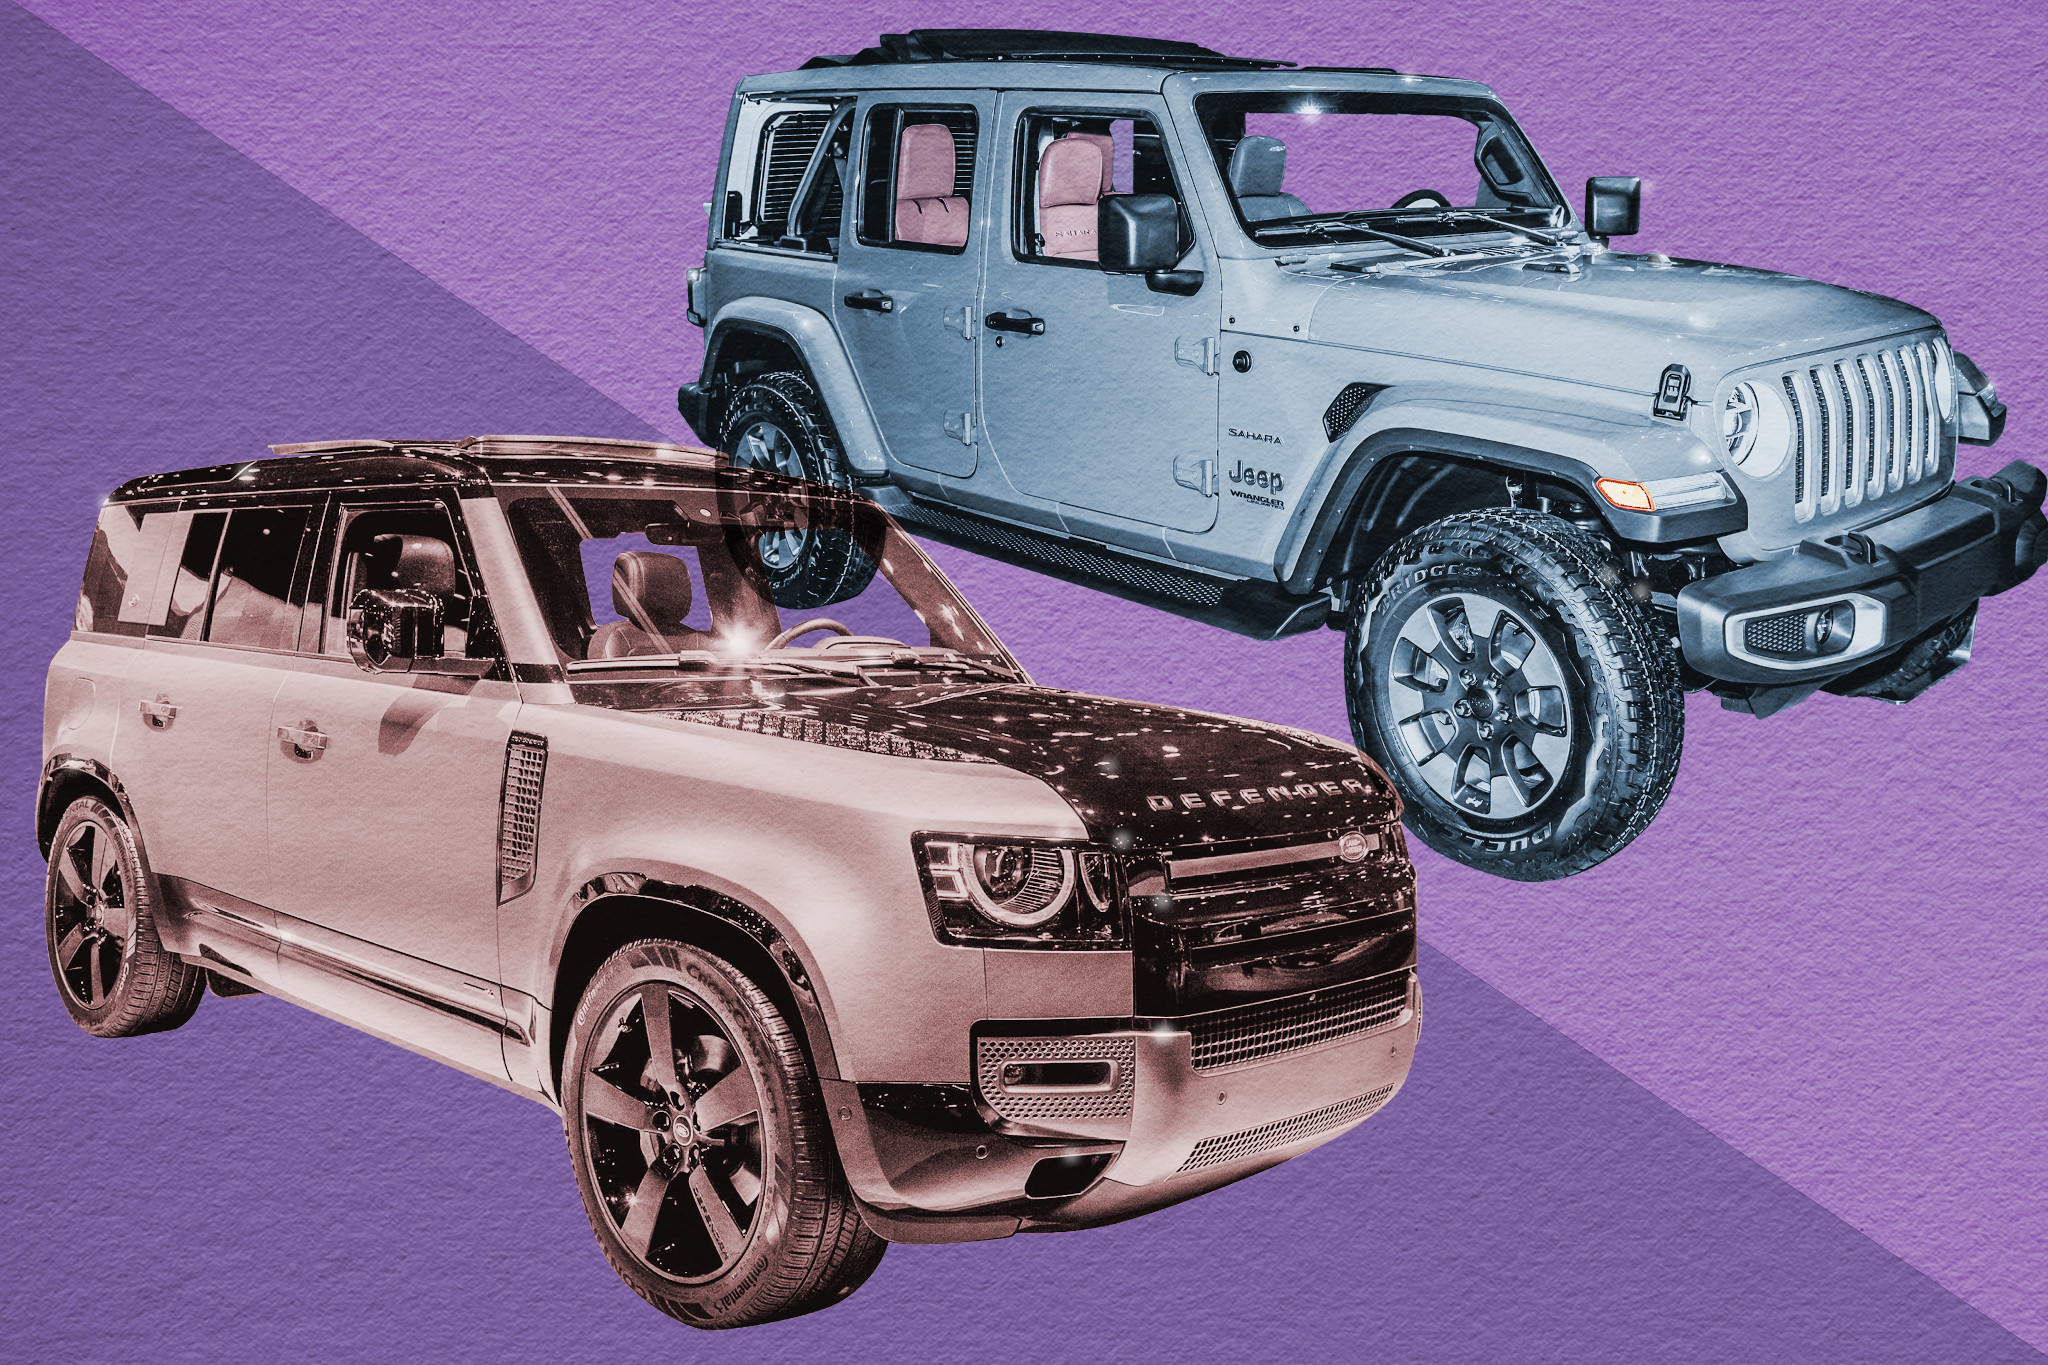 Auto Show Face-Off: 2020 Land Rover Defender Vs. 2020 Jeep Wrangler Rubicon